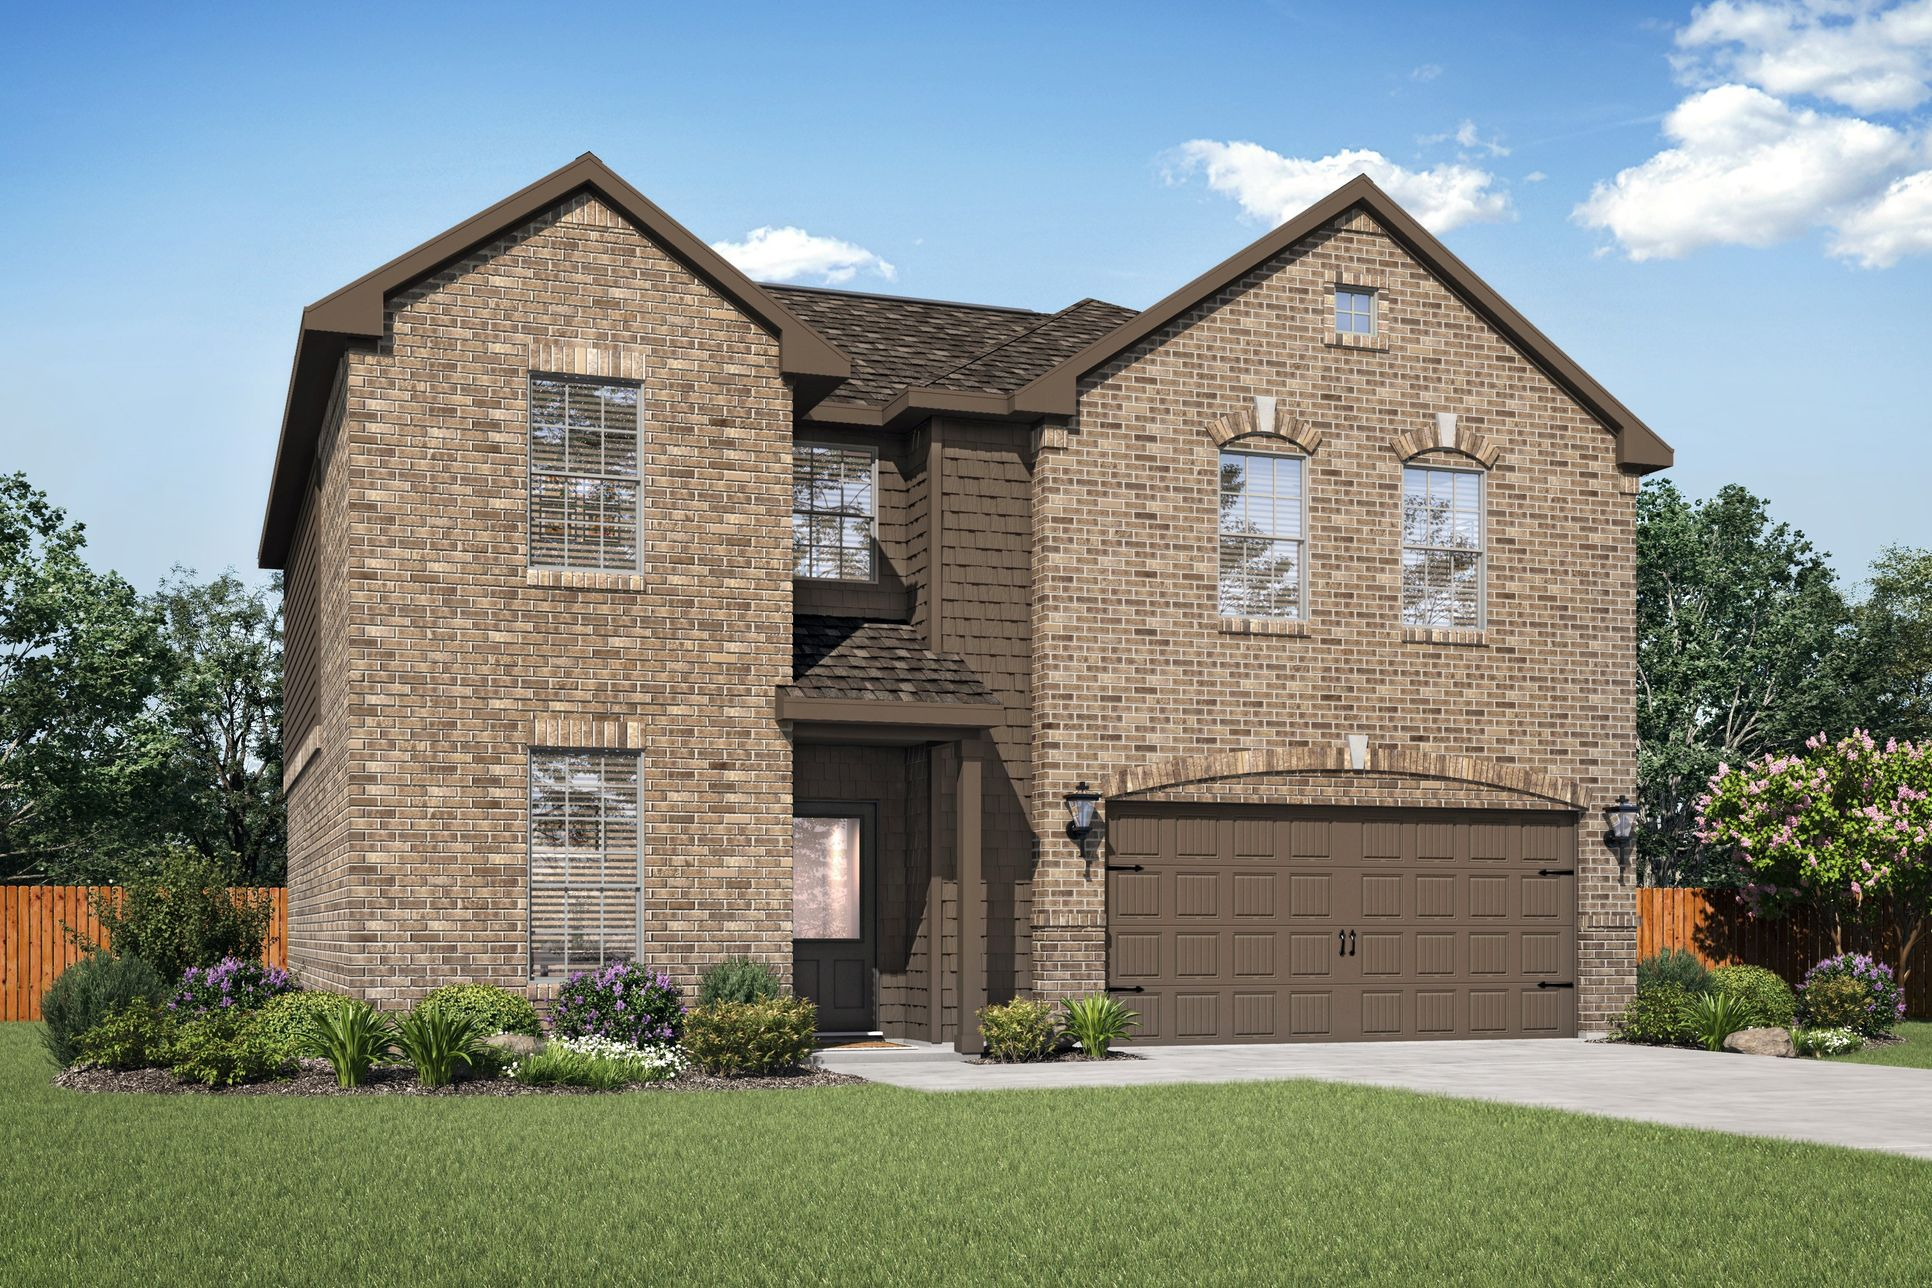 The Ozark Plan by LGI Homes:The beautiful Ozark plan is available now.